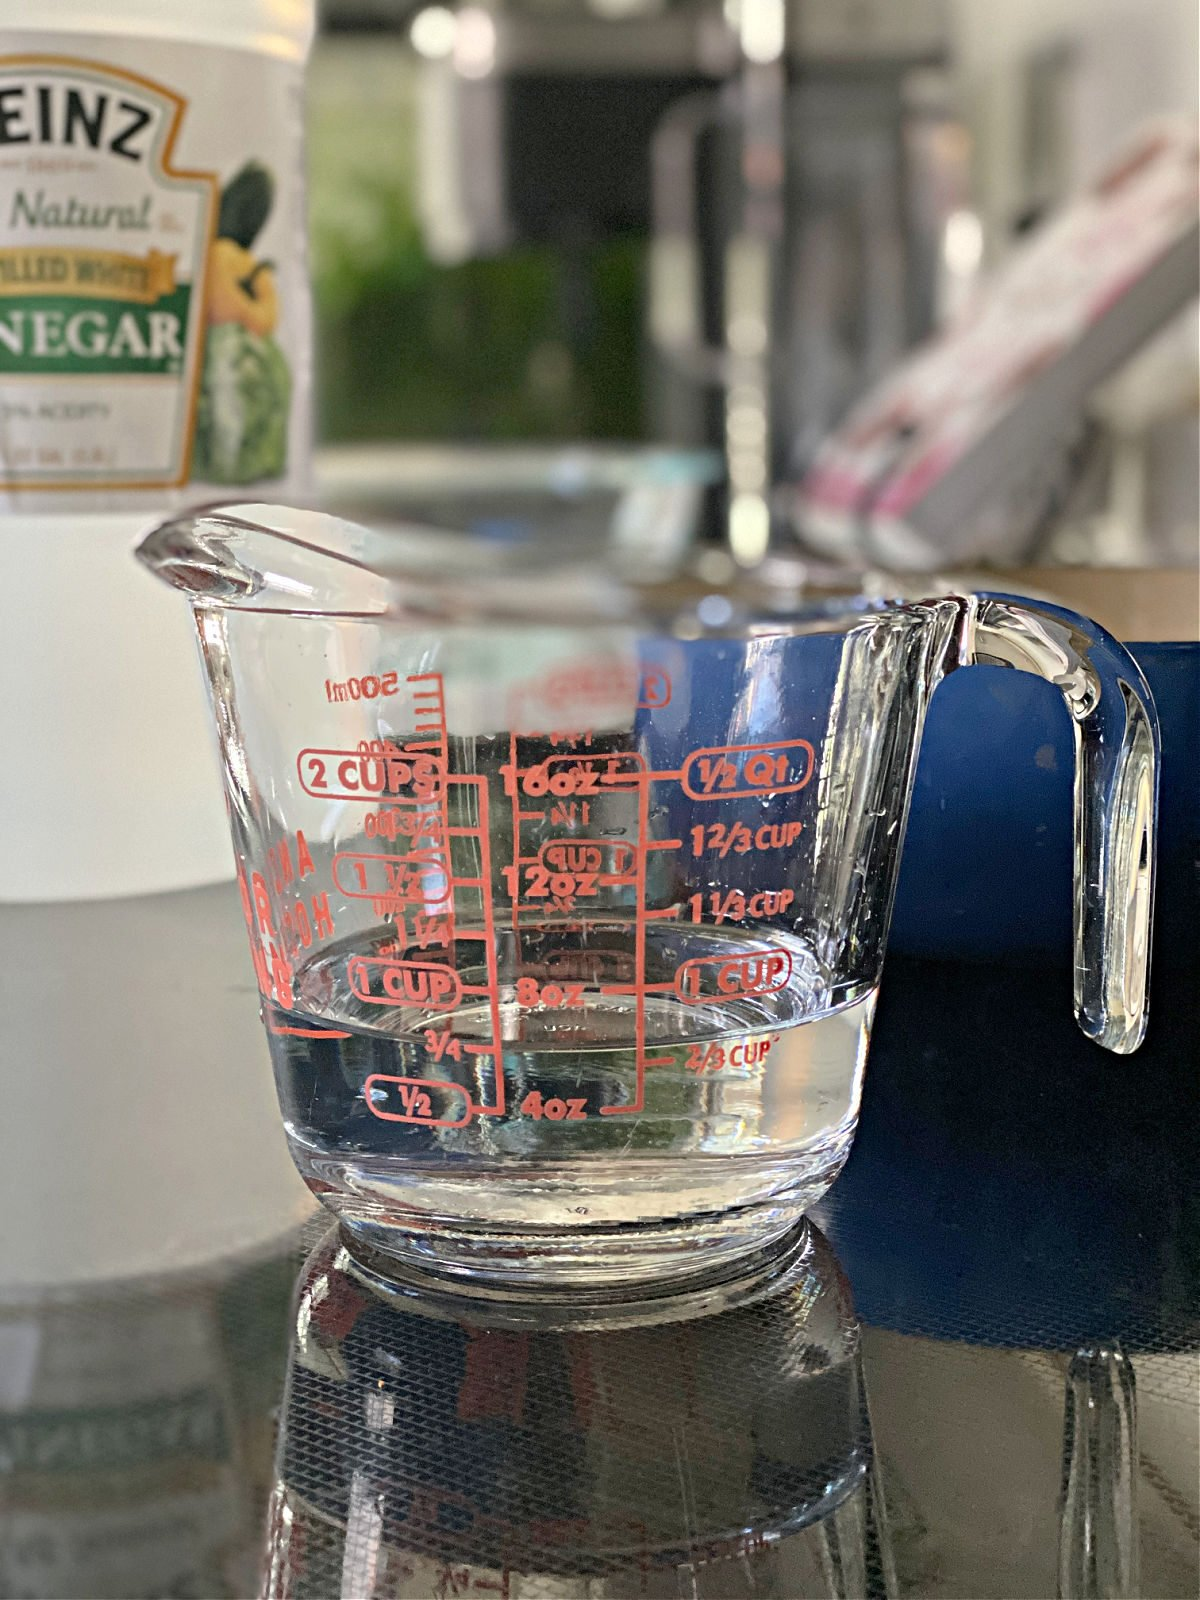 Measuring cup with vinegar on a black surface.